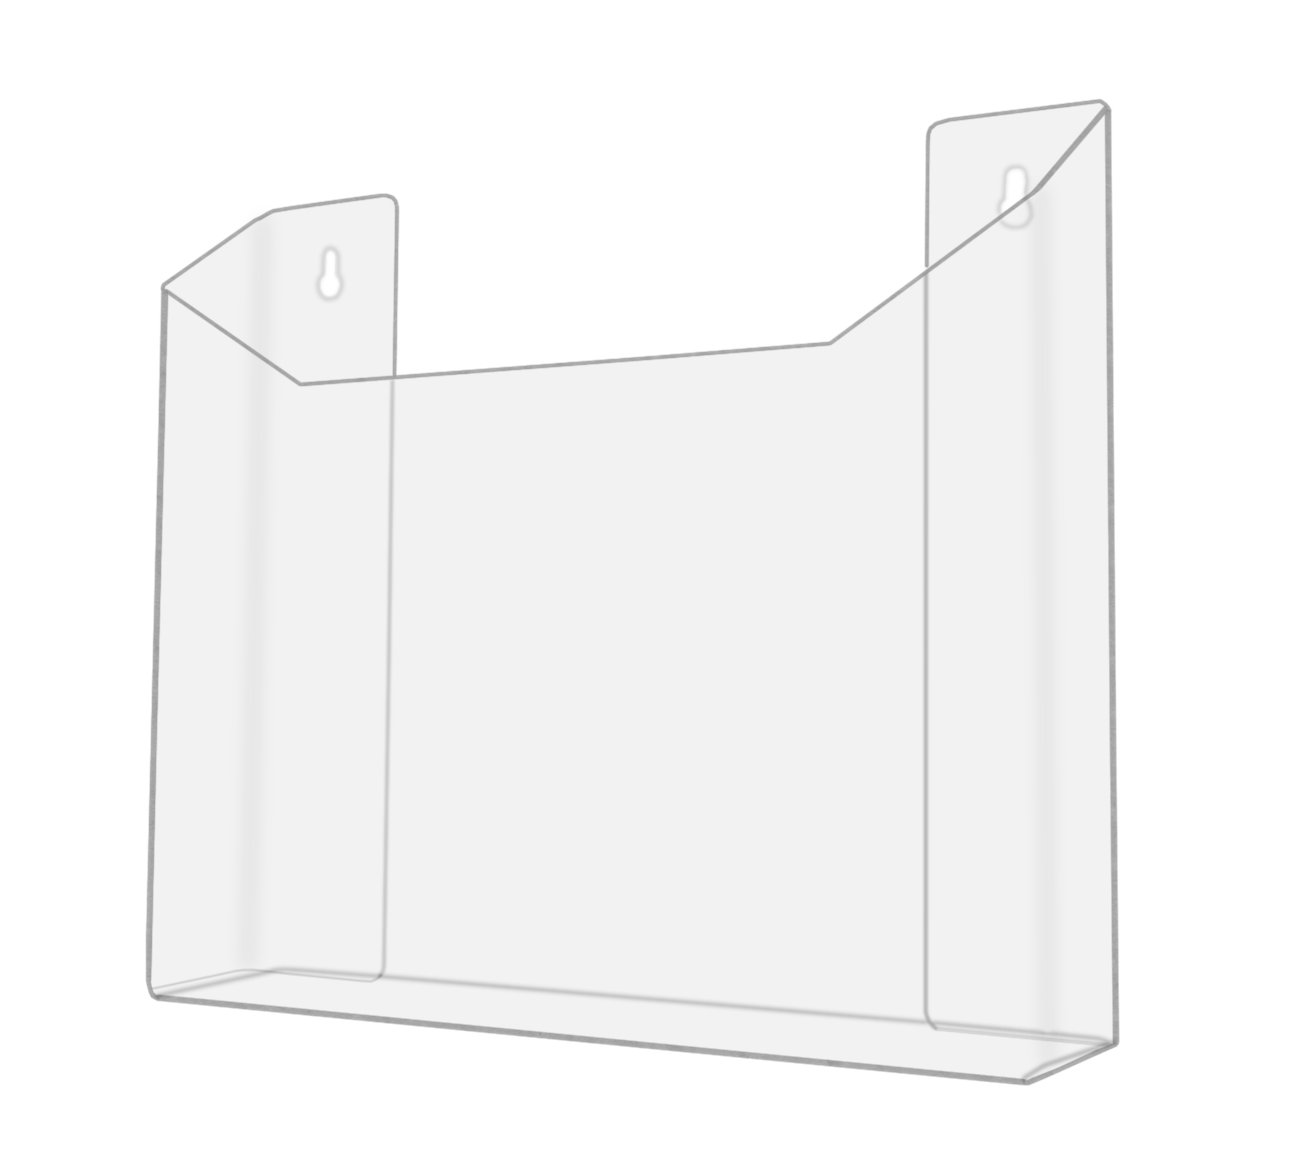 """Marketing Holders Clear Acrylic Wall Mount Newspaper Rack for Newspapers and 13-1/2""""W Literature (Pack of 12) by Marketing Holders (Image #2)"""